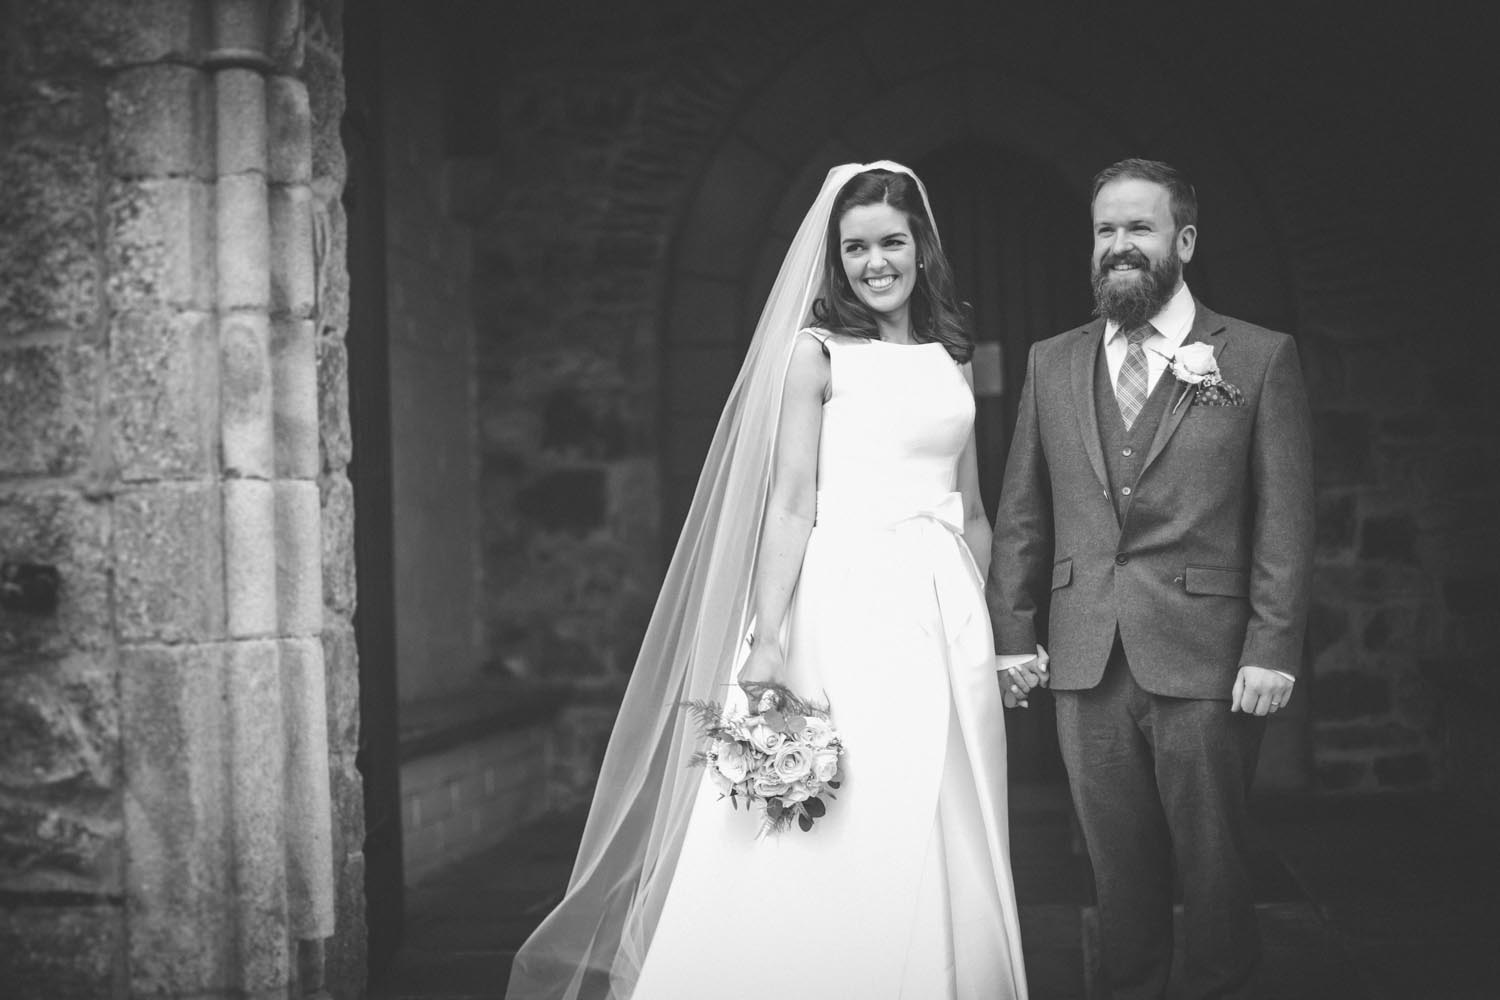 Step House wedding photographer Carlow Borris071.jpg